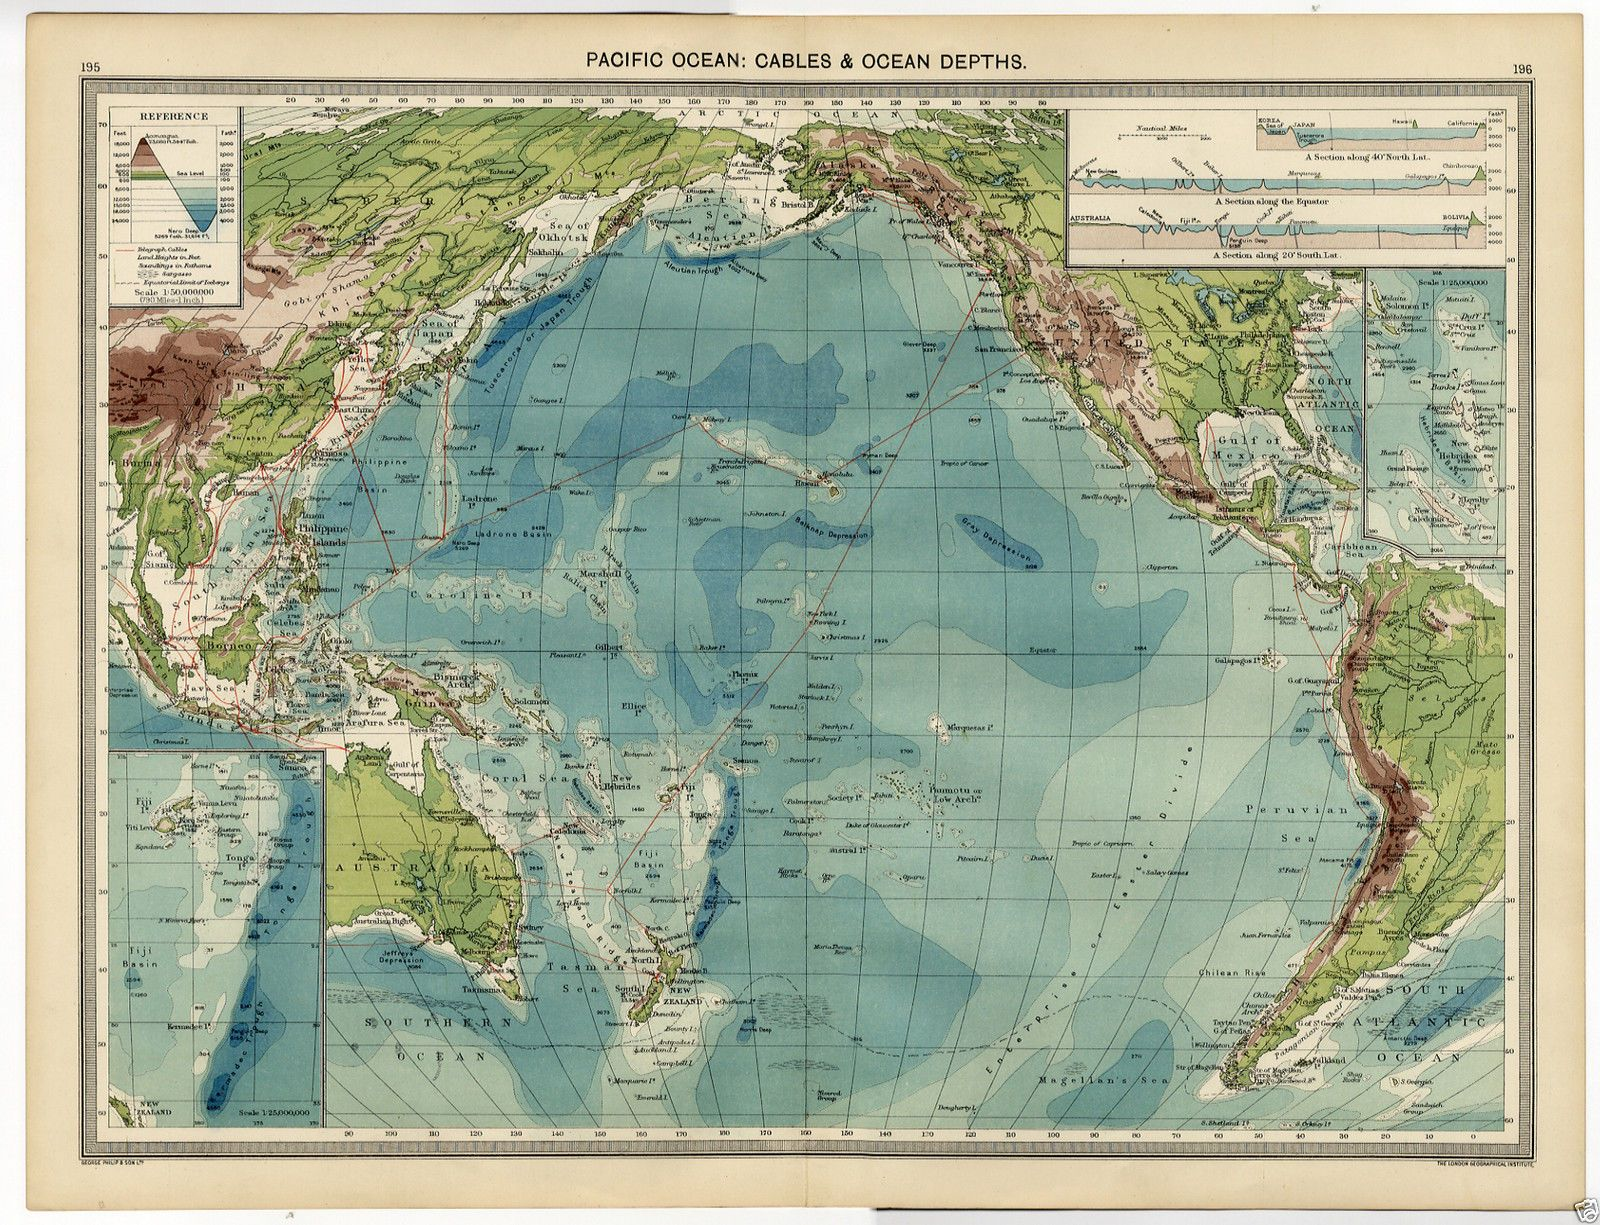 MAP PACIFIC OCEAN Cables DEPTH Troughs Trenches BELKNAP - Ocean depth map